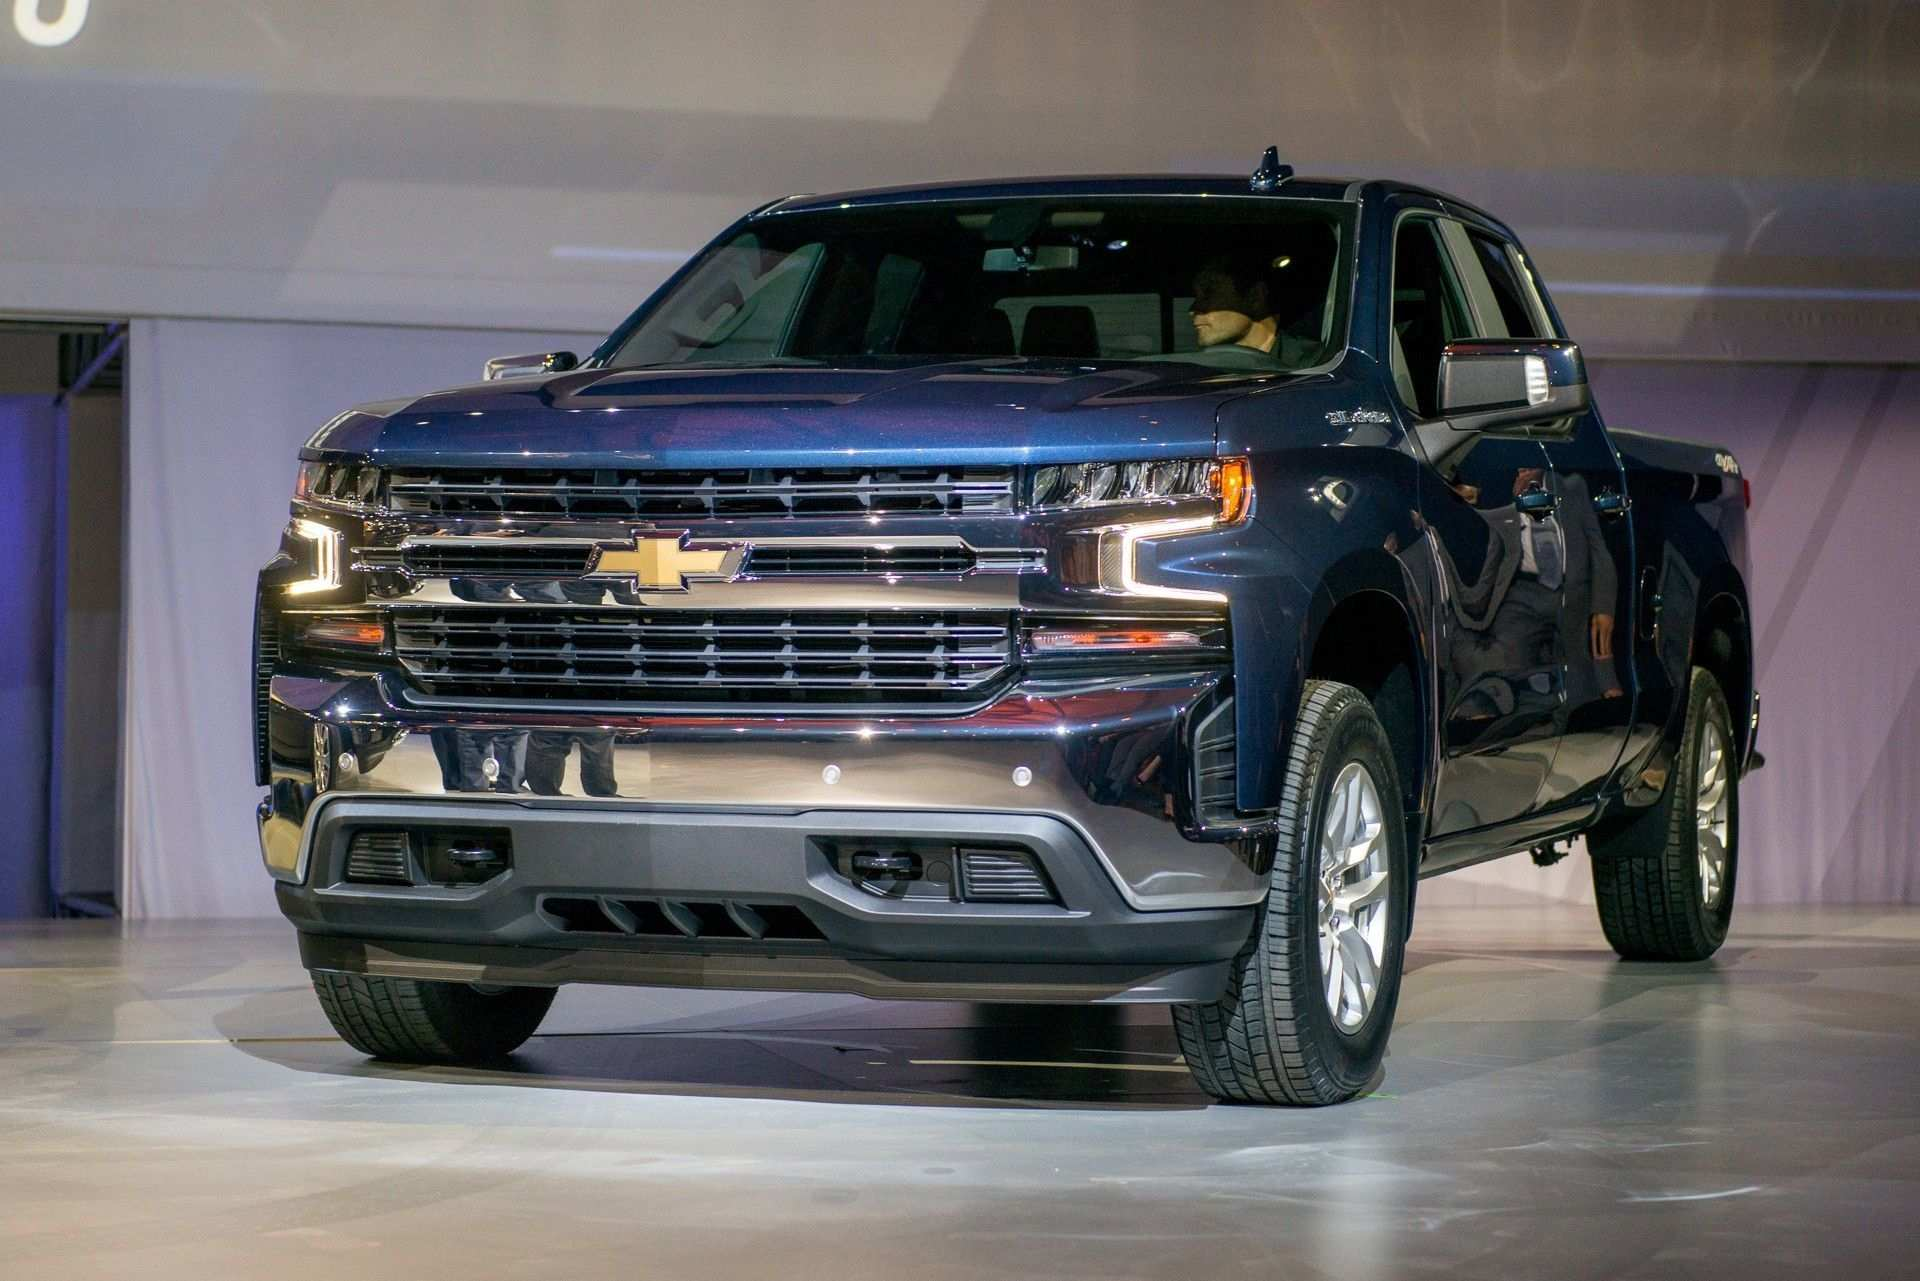 36 All New 2020 Chevy Suburban 2500 Z71 Reviews with 2020 Chevy Suburban 2500 Z71